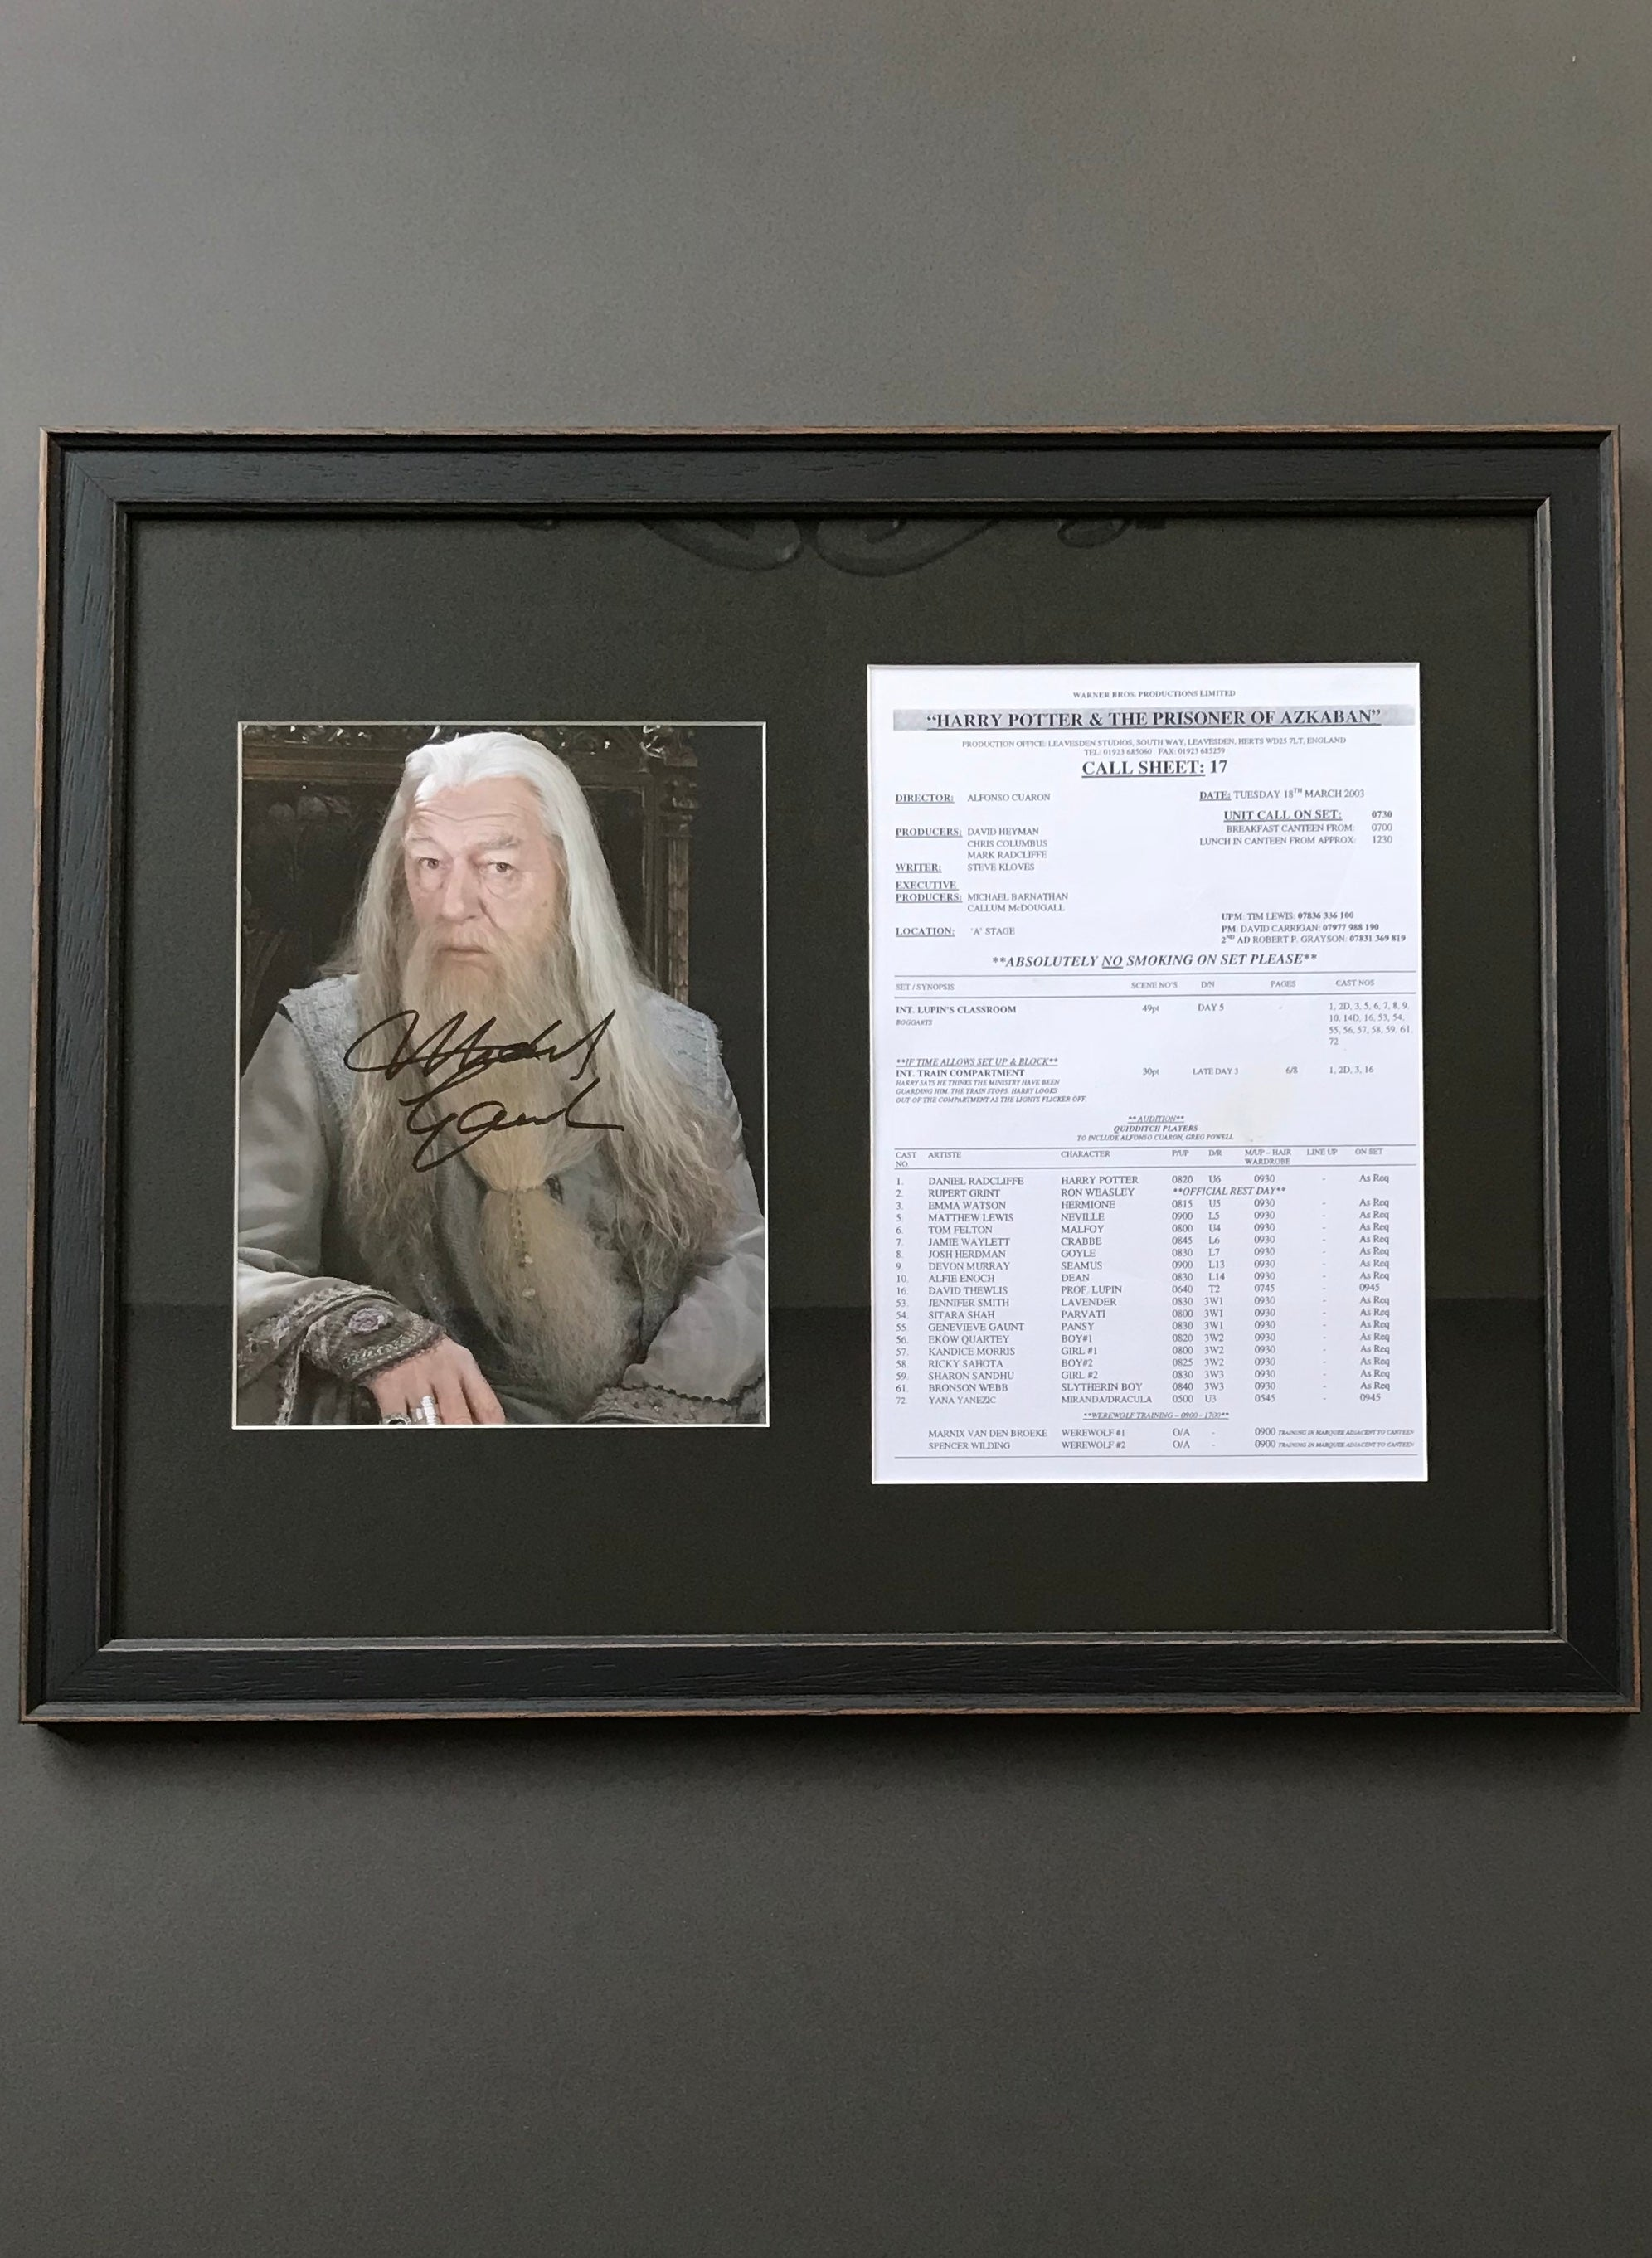 Harry Potter & The Prisoner of Azkaban (2004) - A Call Sheet & Corresponding Sir Michael Gambon Autograph - SOLD